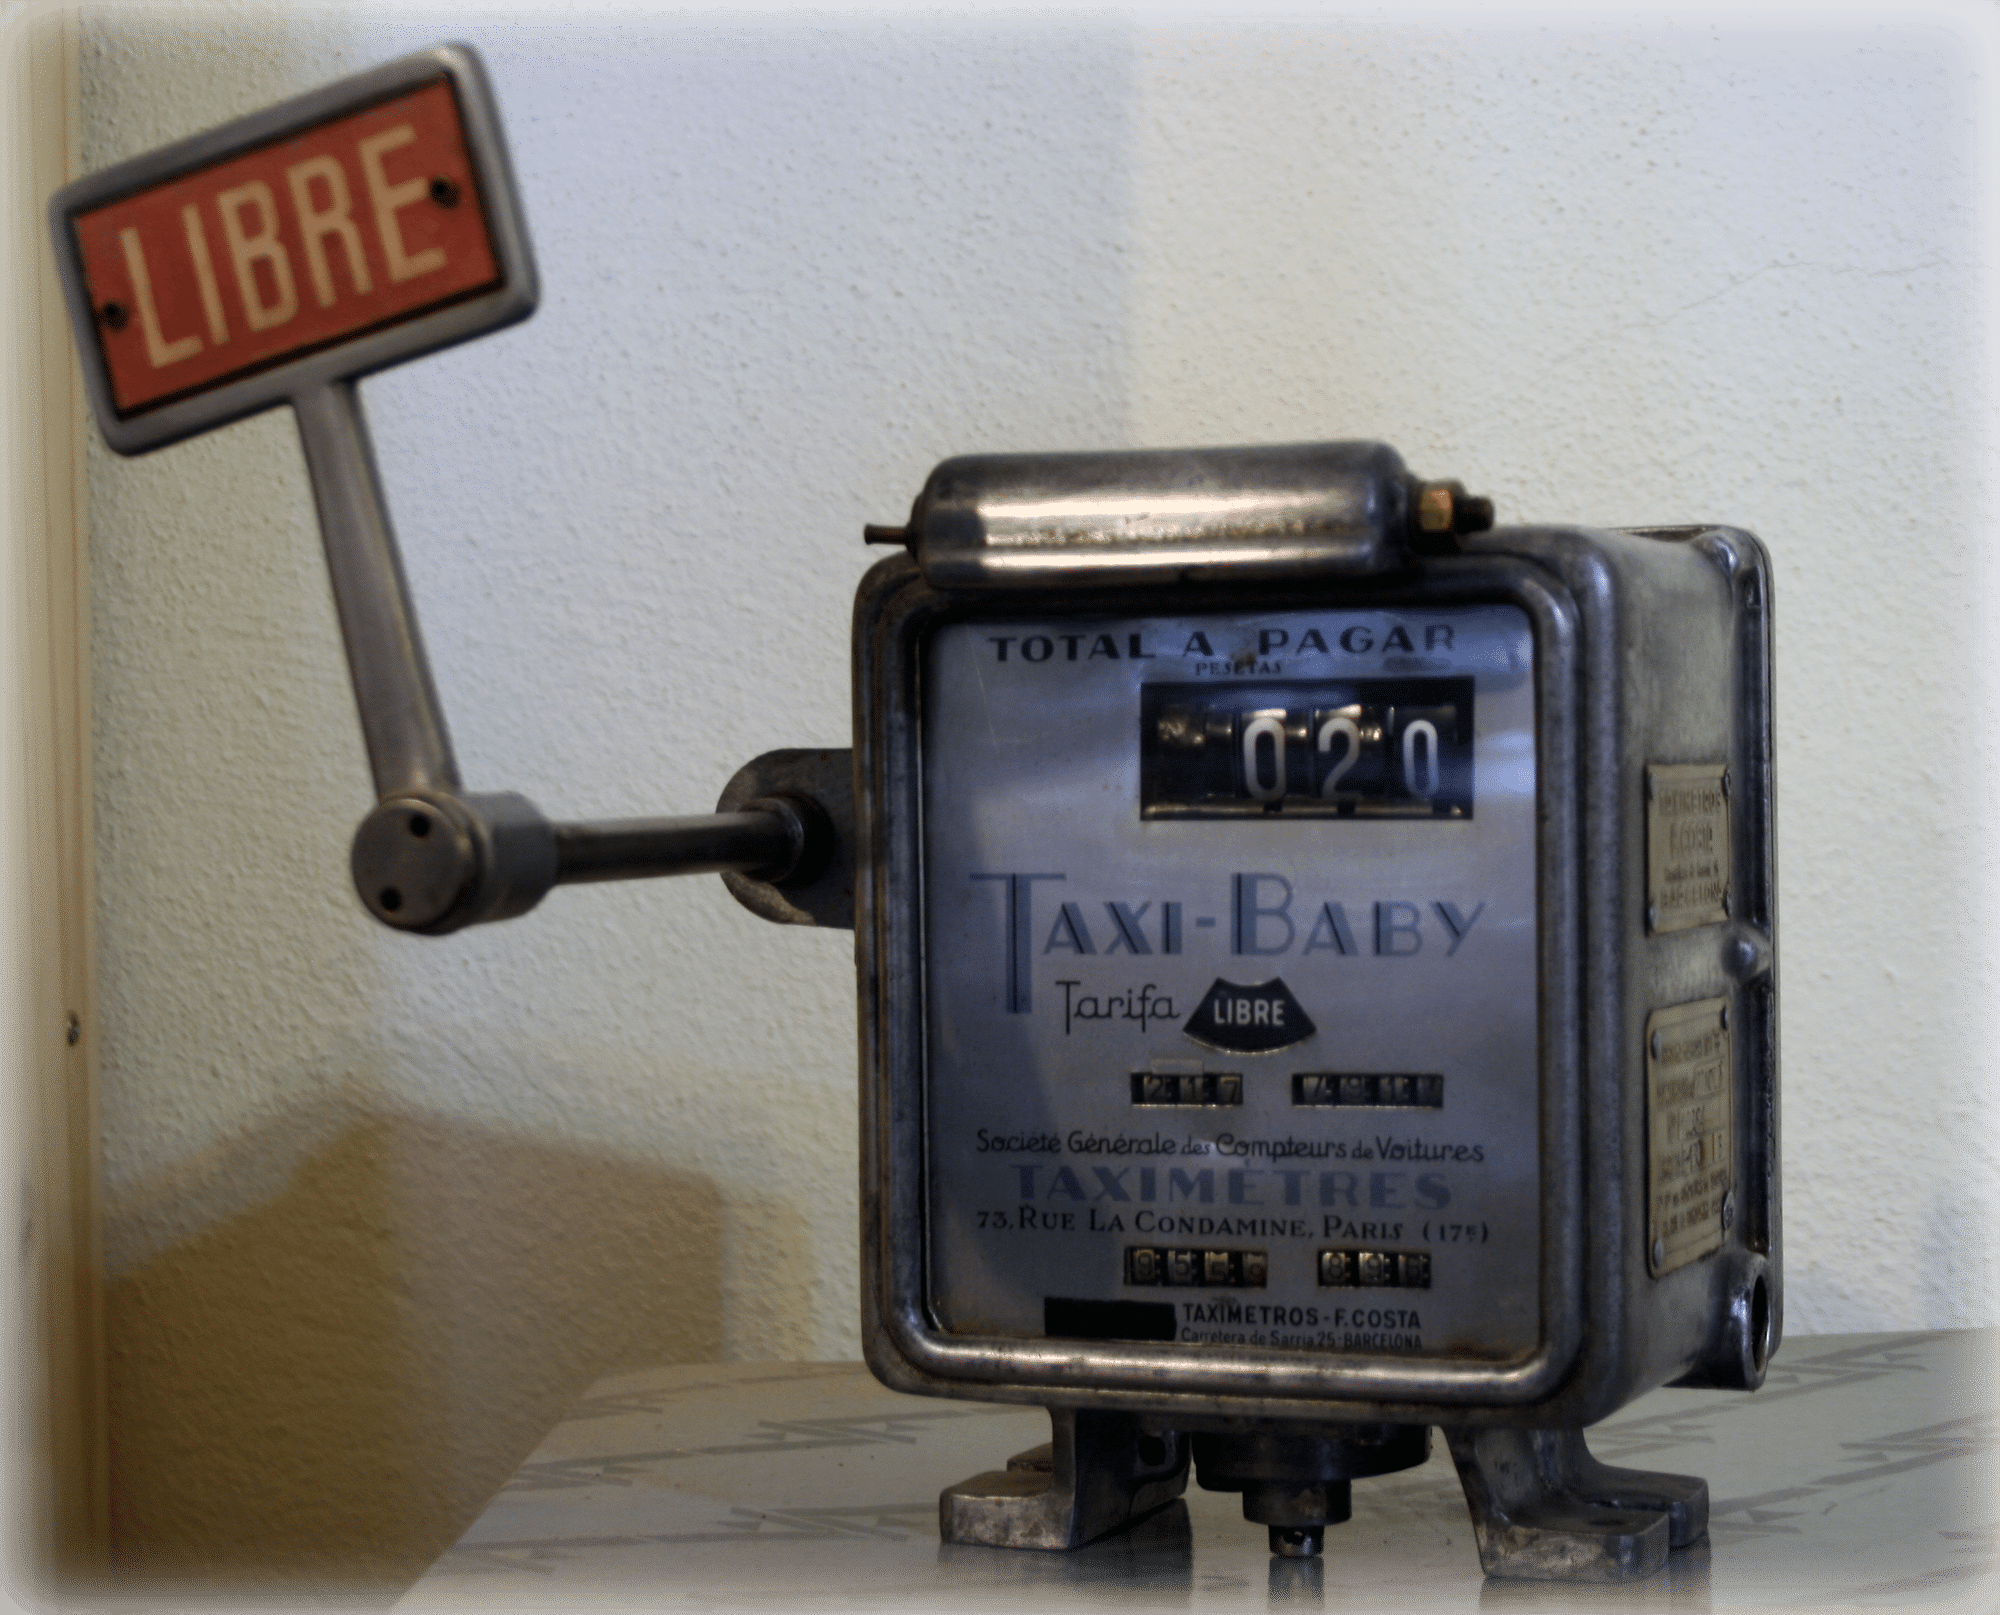 An old mechanical taximeter